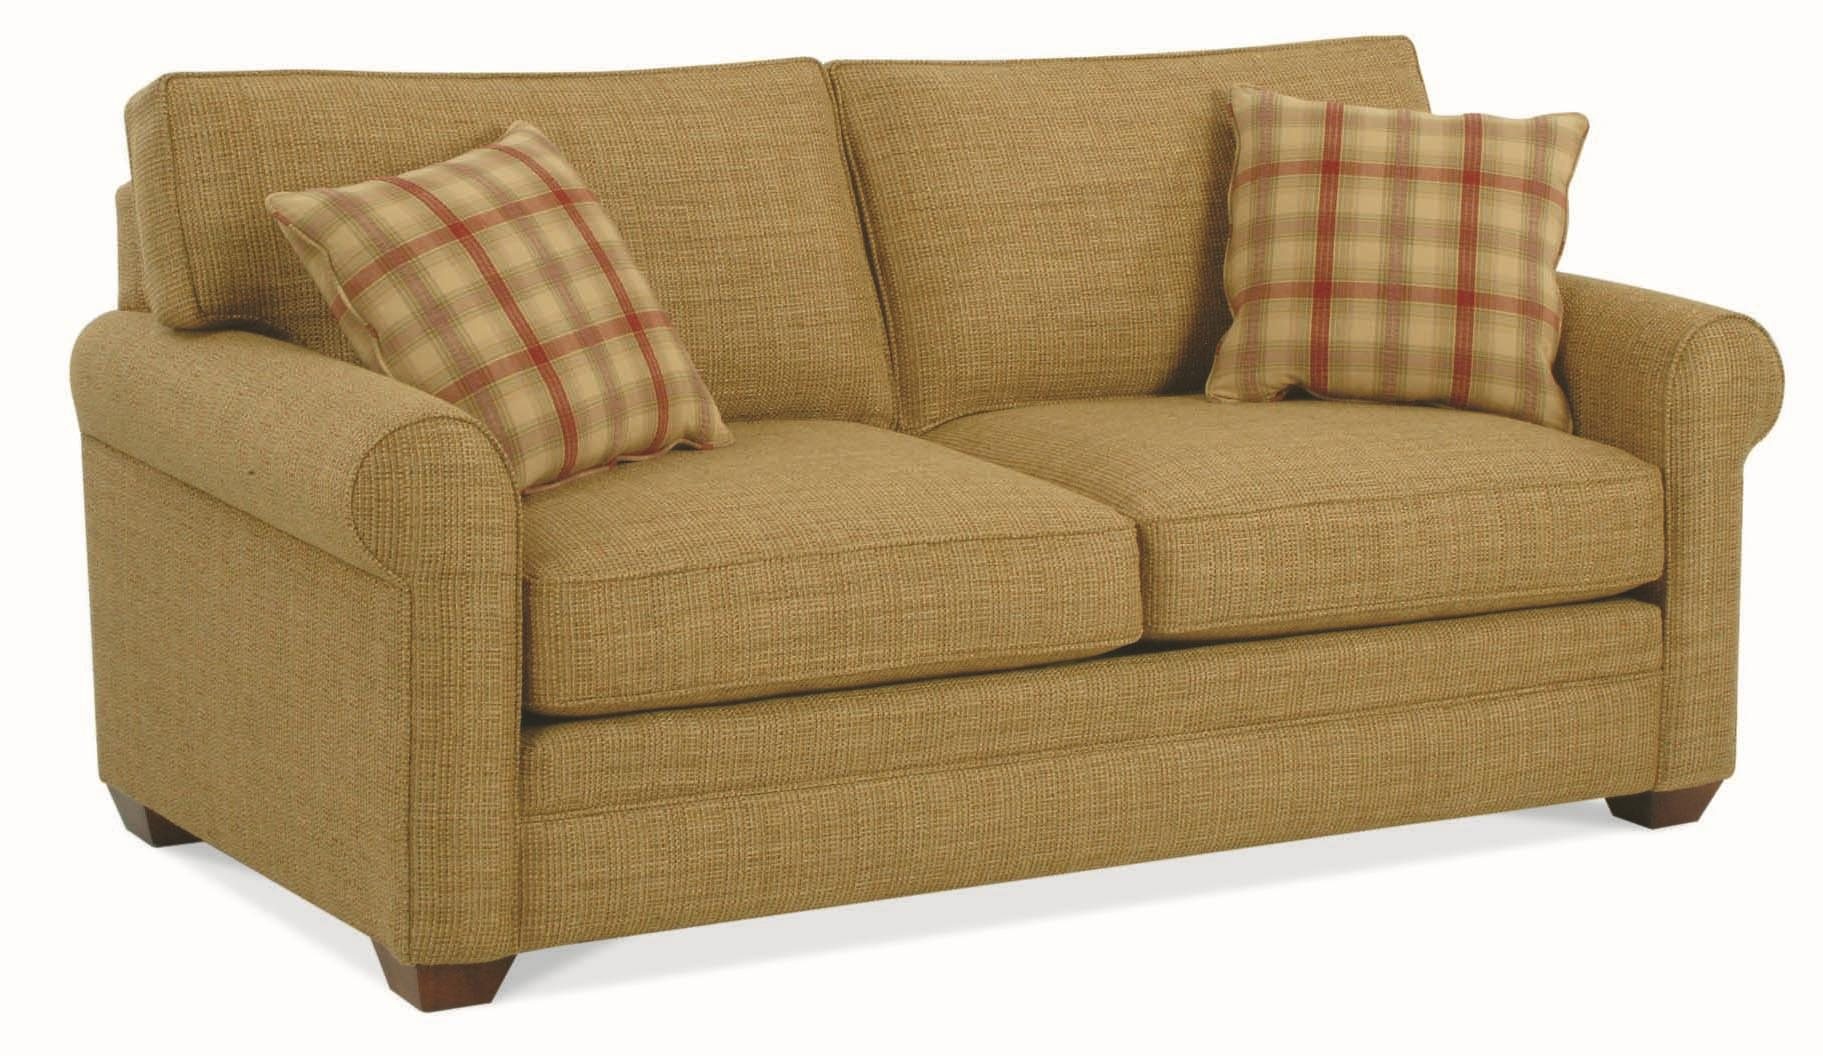 728 2-Seater Loft Sofa by Braxton Culler at Hudson's Furniture